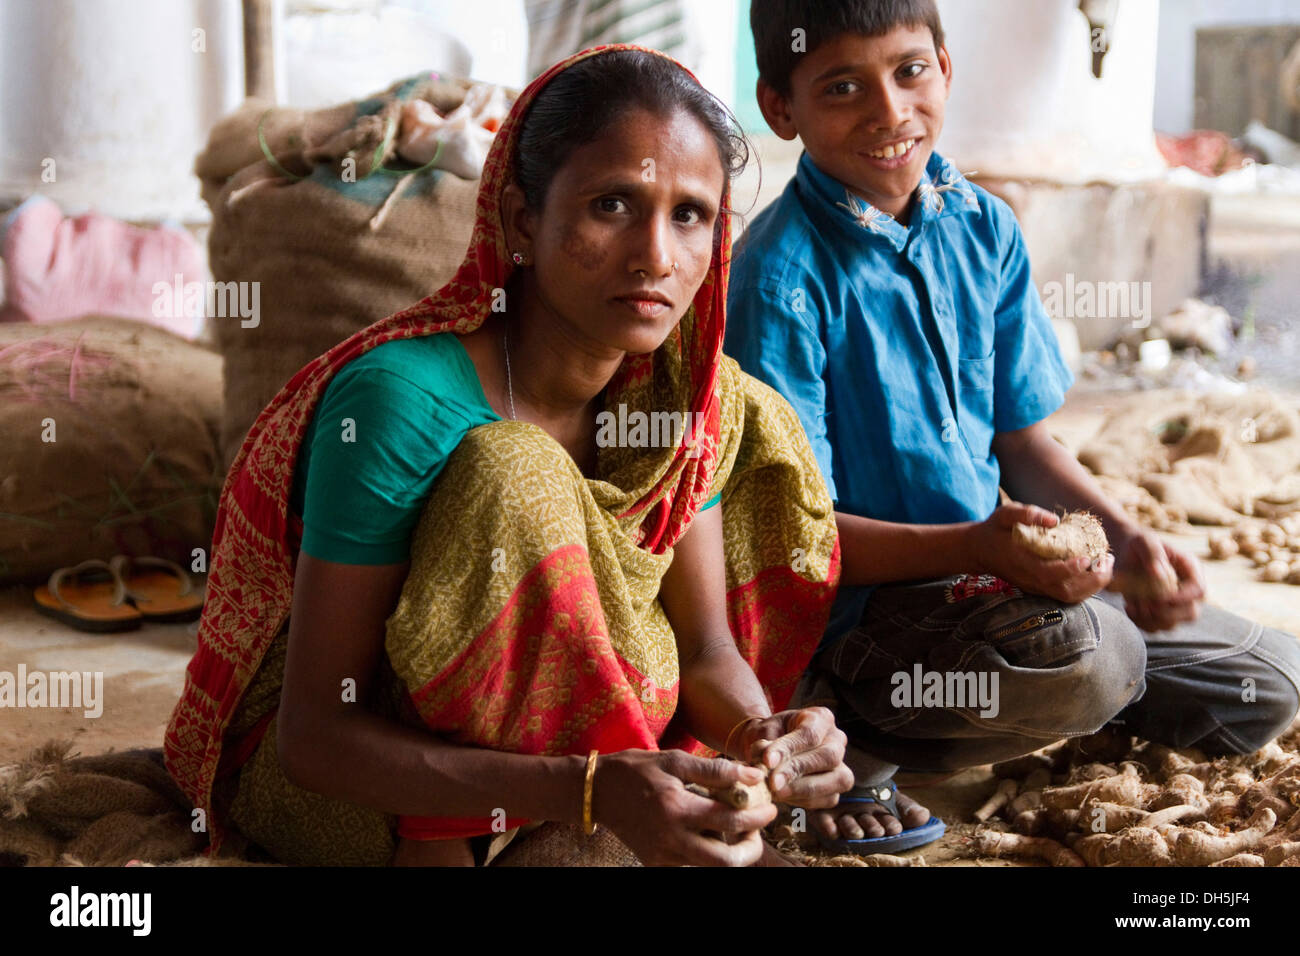 Woman and a boy sorting roots, spice market, Old Dhaka, Dhaka, Bangladesh, South Asia - Stock Image